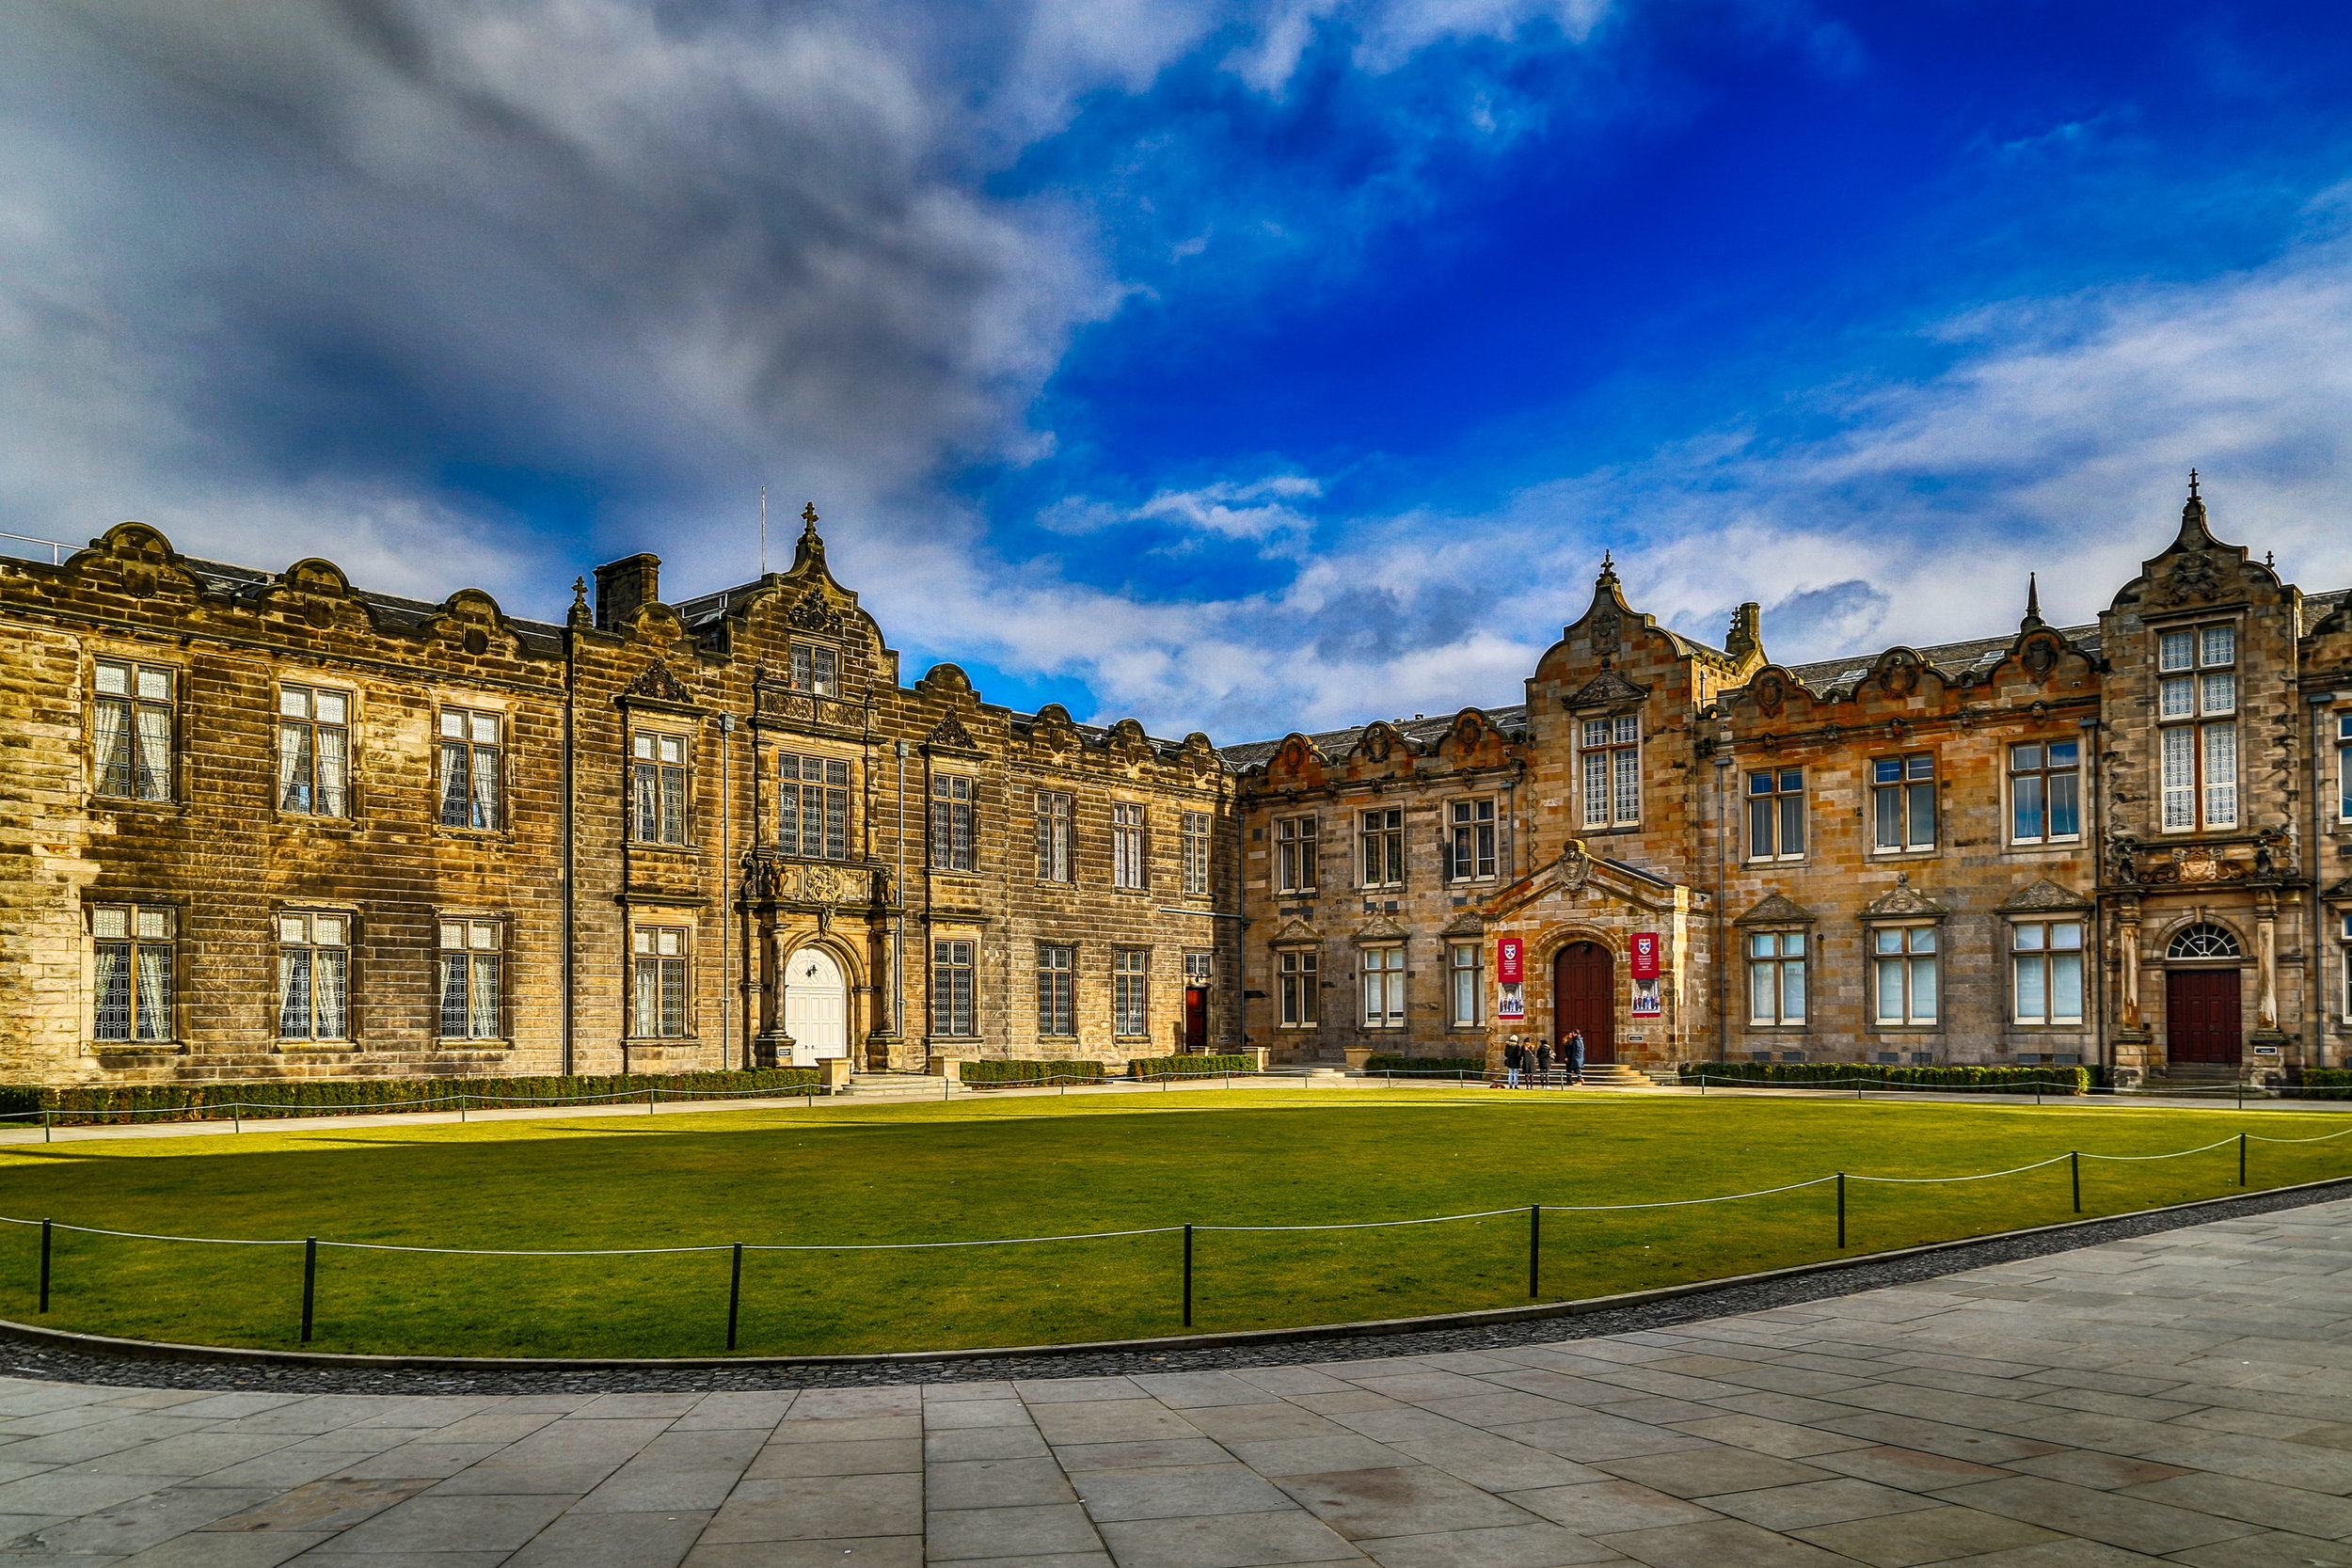 The Quad, the University of St Andrews